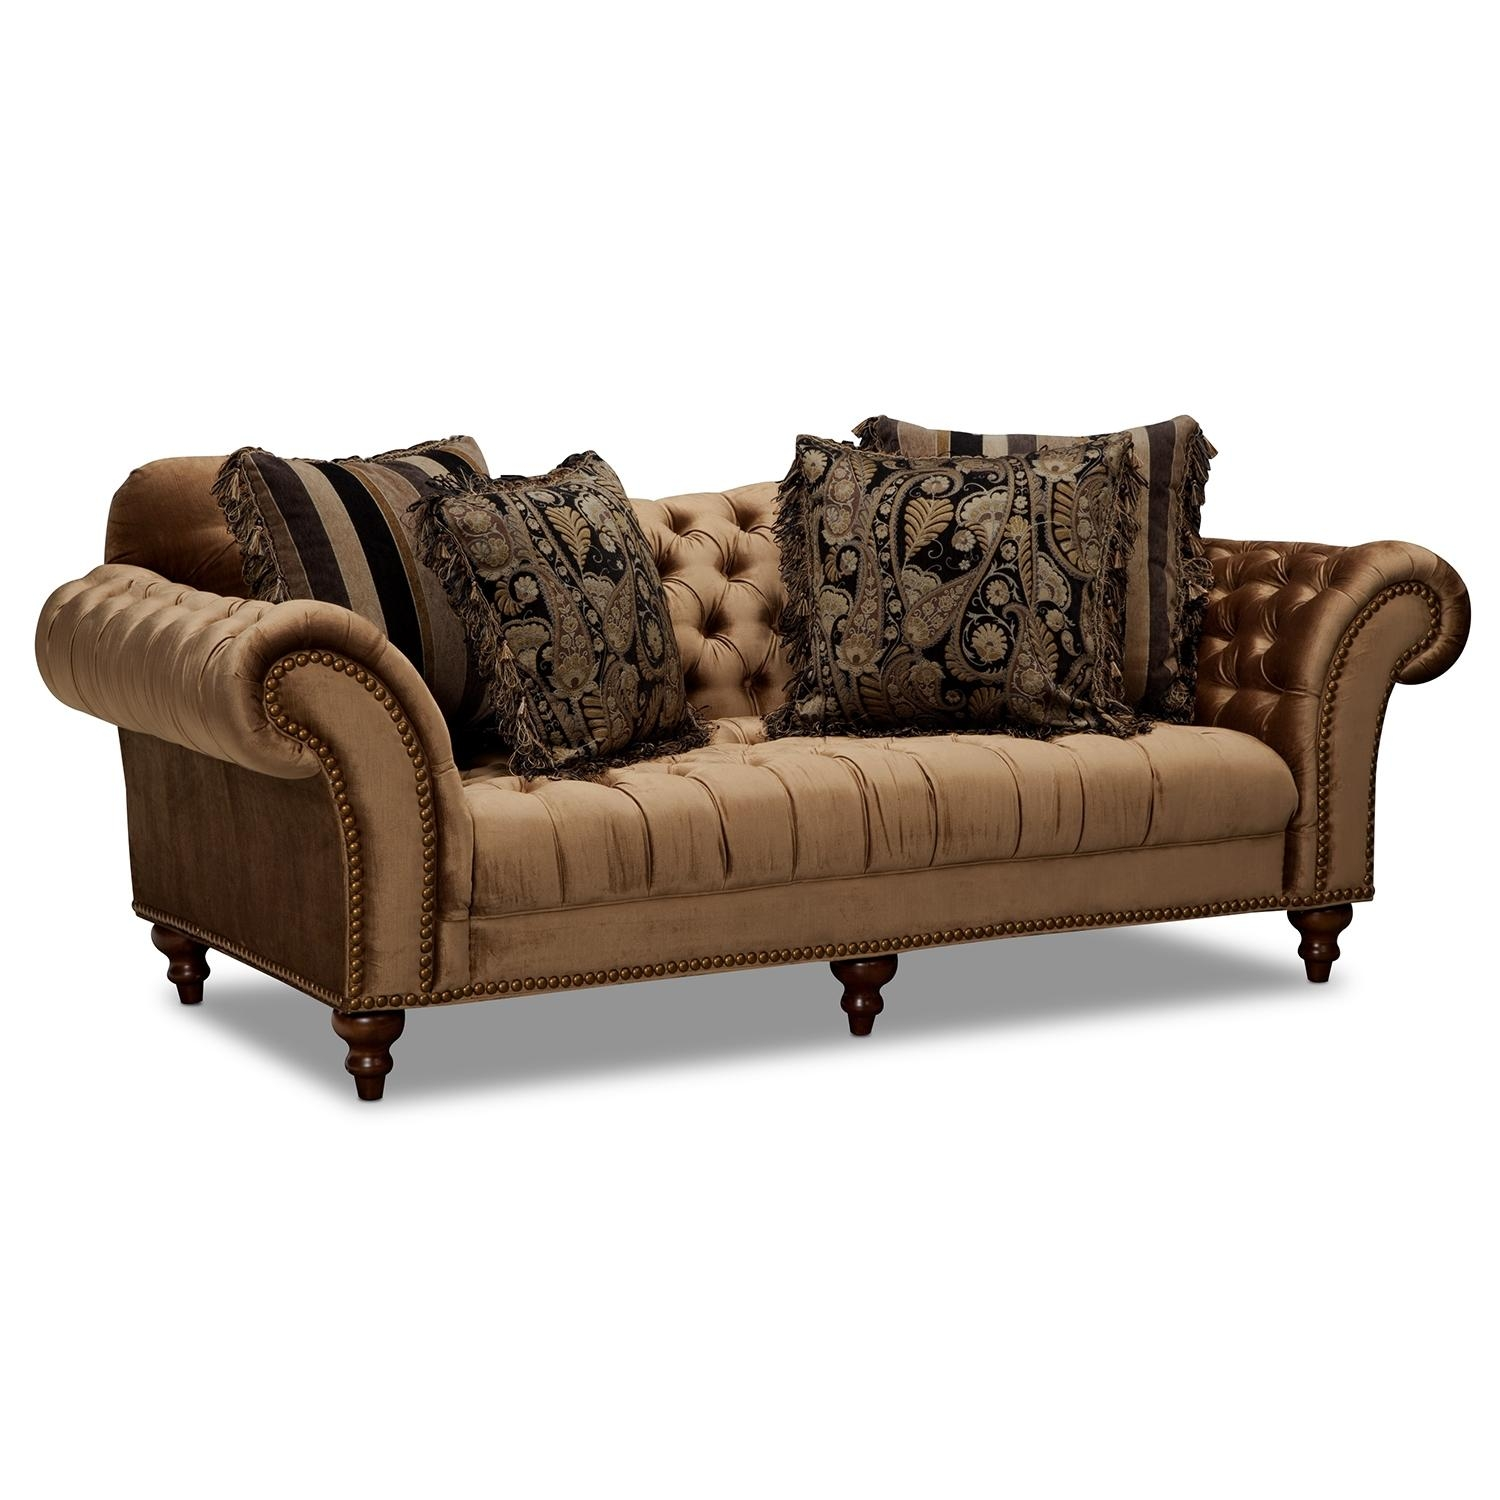 Marvelous Value City Furniture Living Room Sets For Home – 5 Piece For Value City Sofas (Image 10 of 20)